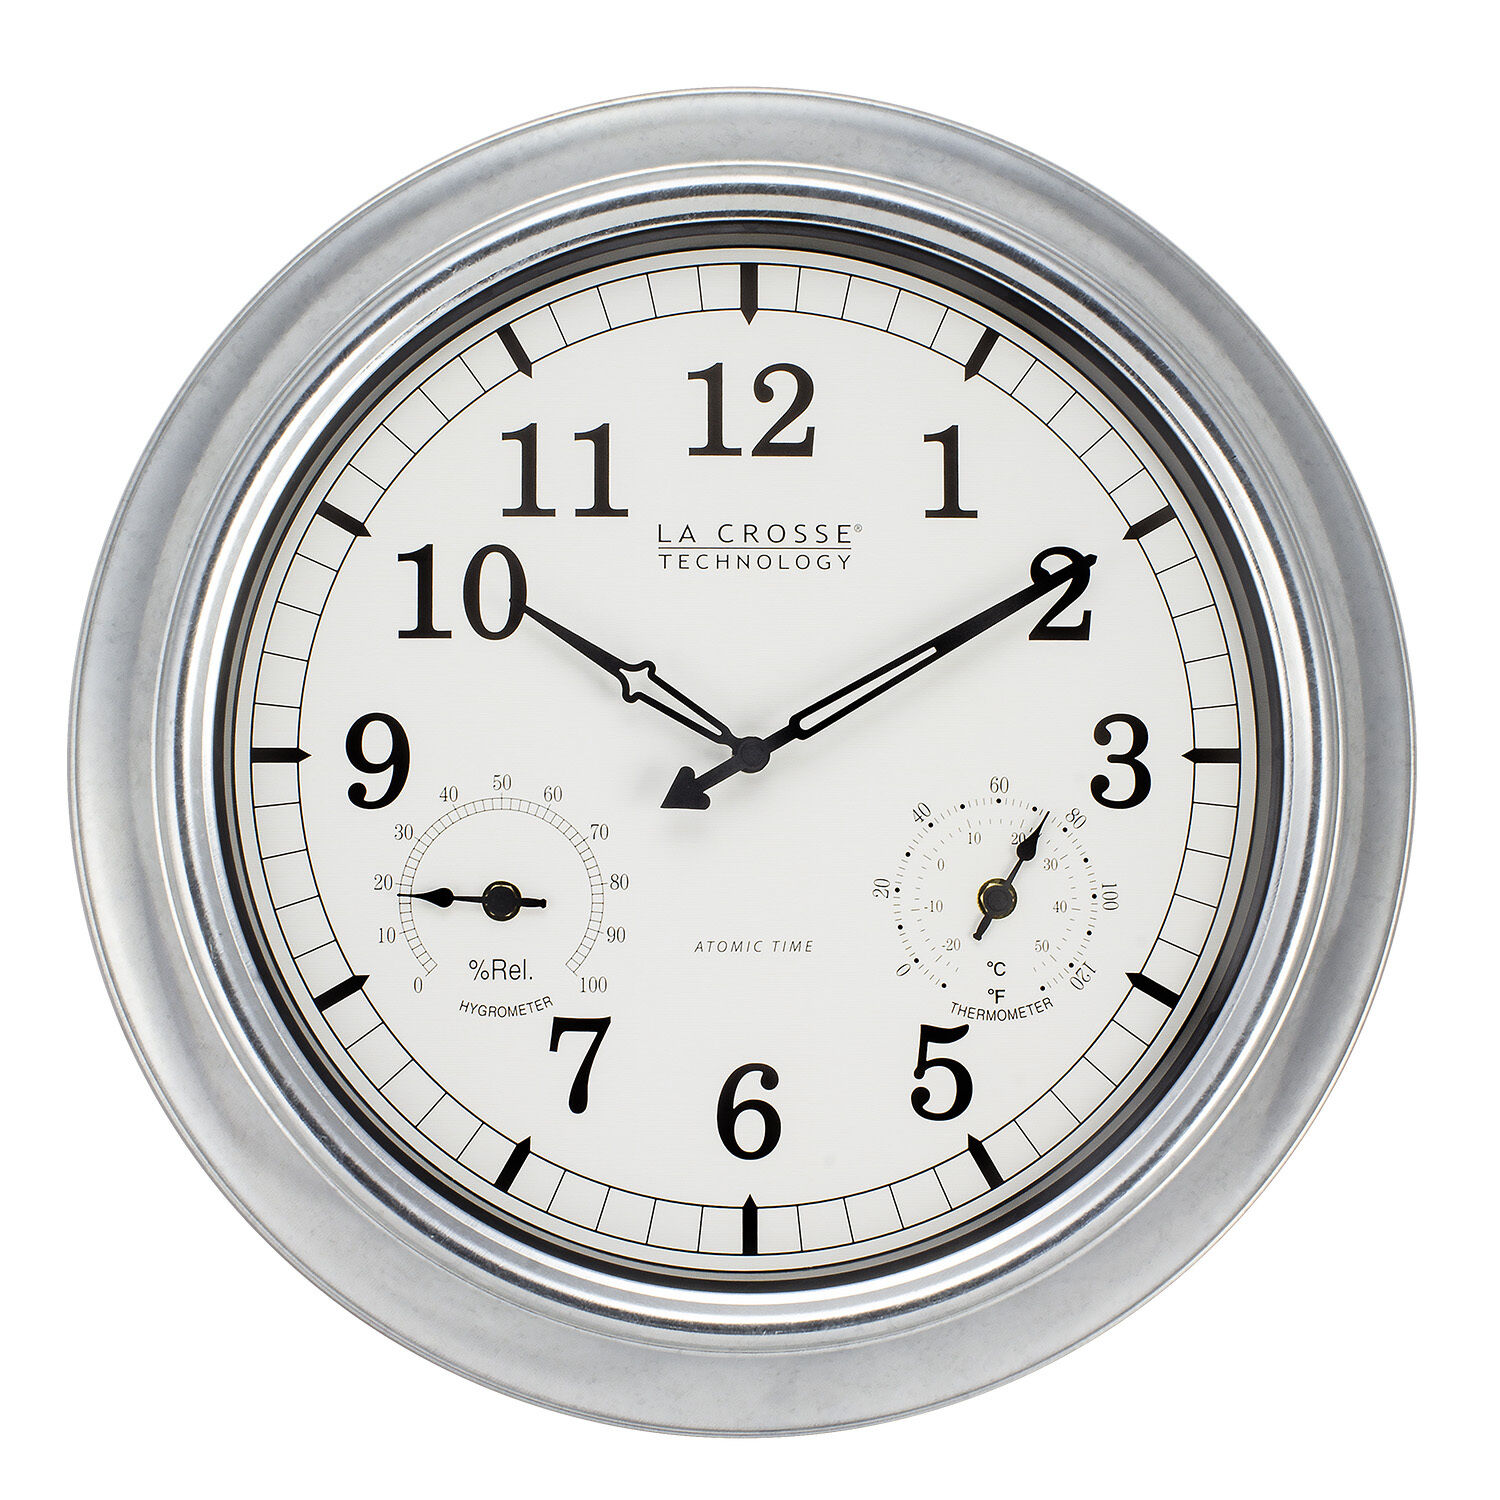 Bbb87740 la crosse technology 18 indooroutdoor atomic wall clock picture 1 of 5 amipublicfo Gallery